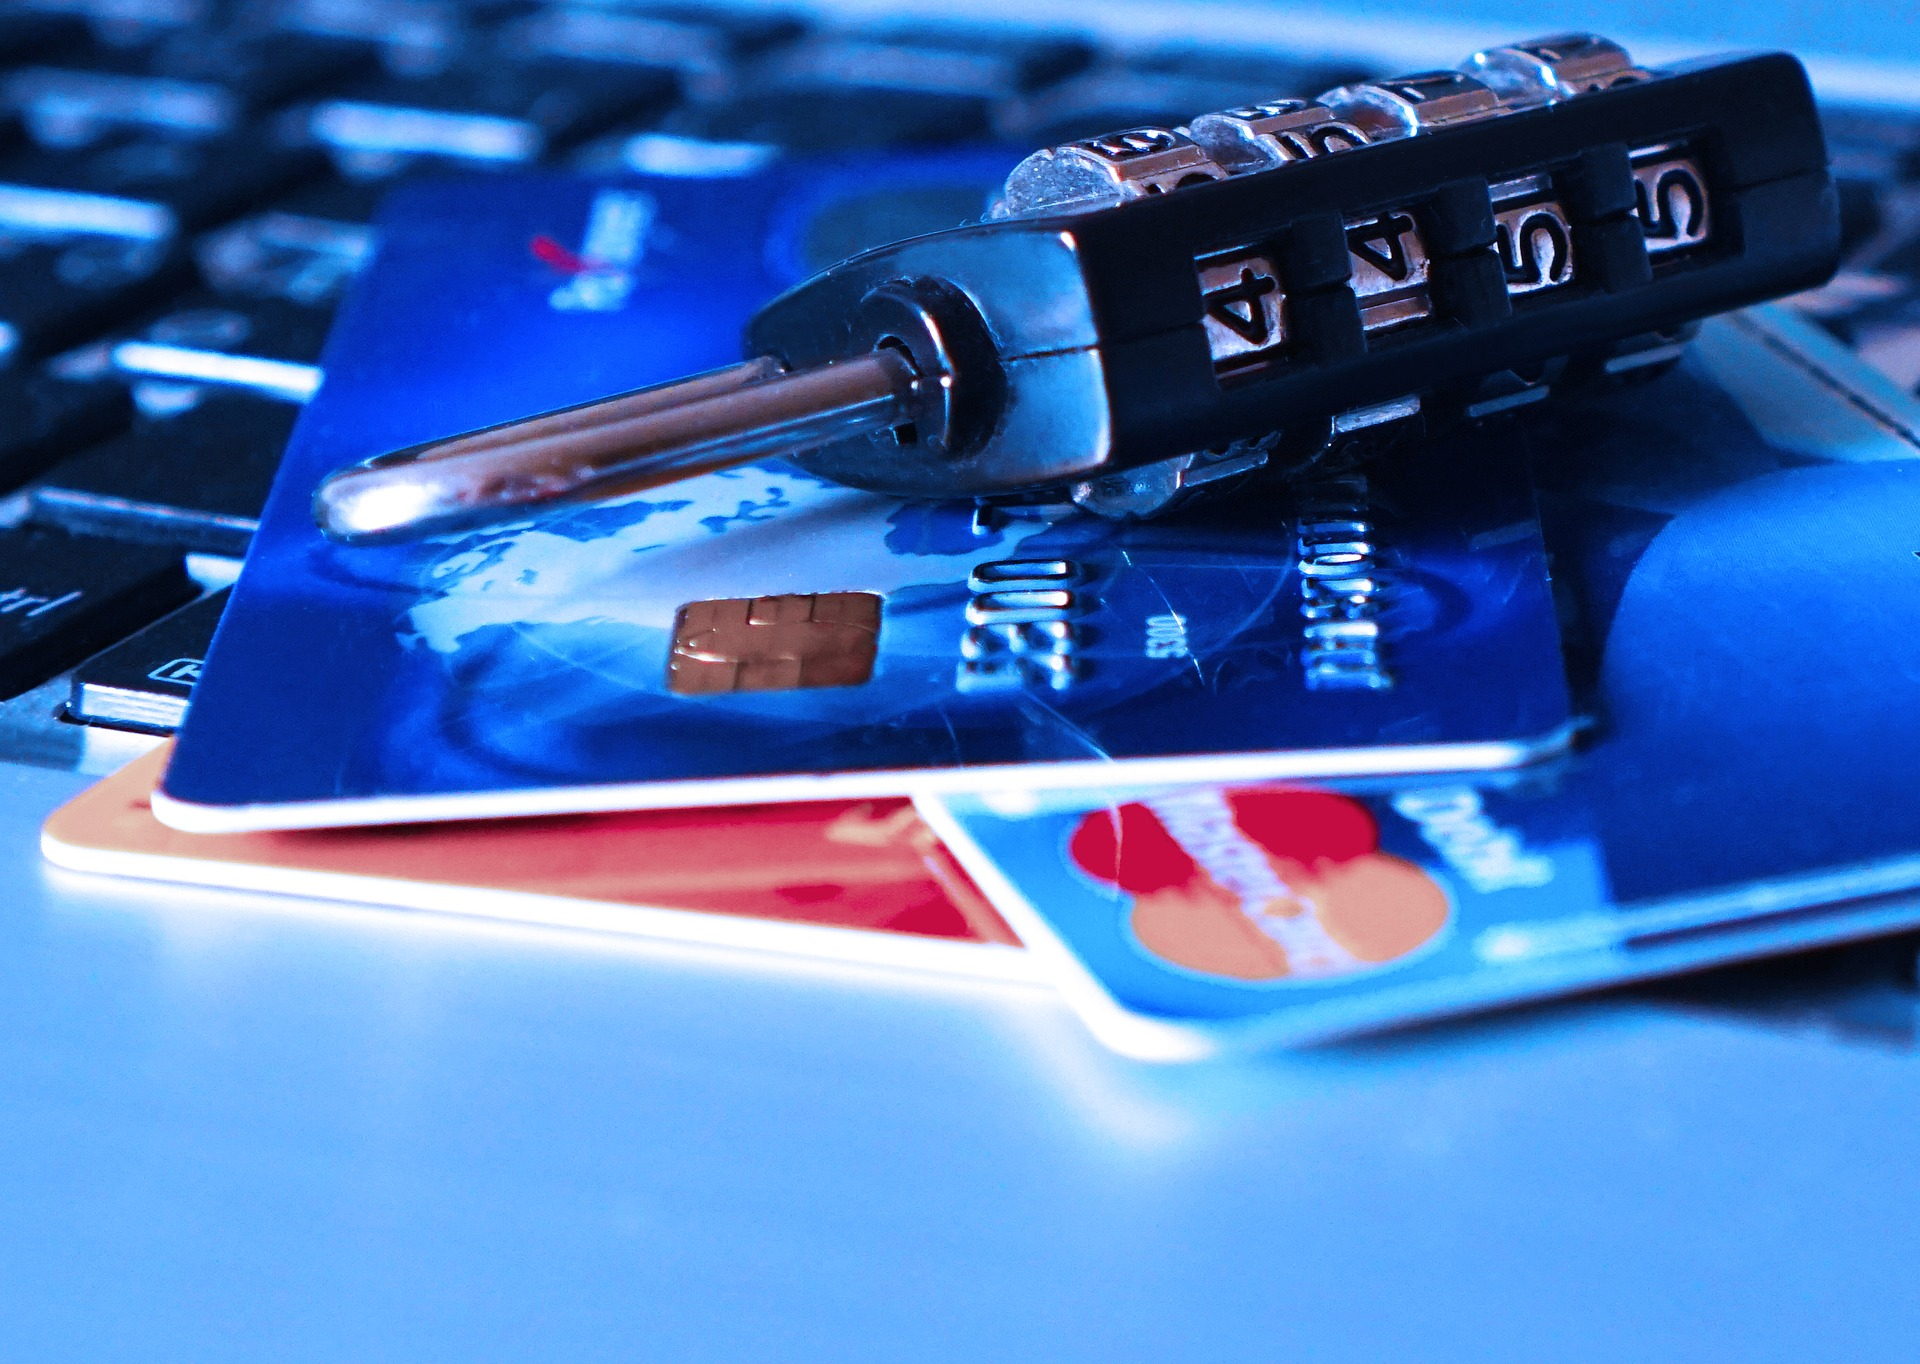 LIMIT YOUR CREDIT CARD EXPENSES